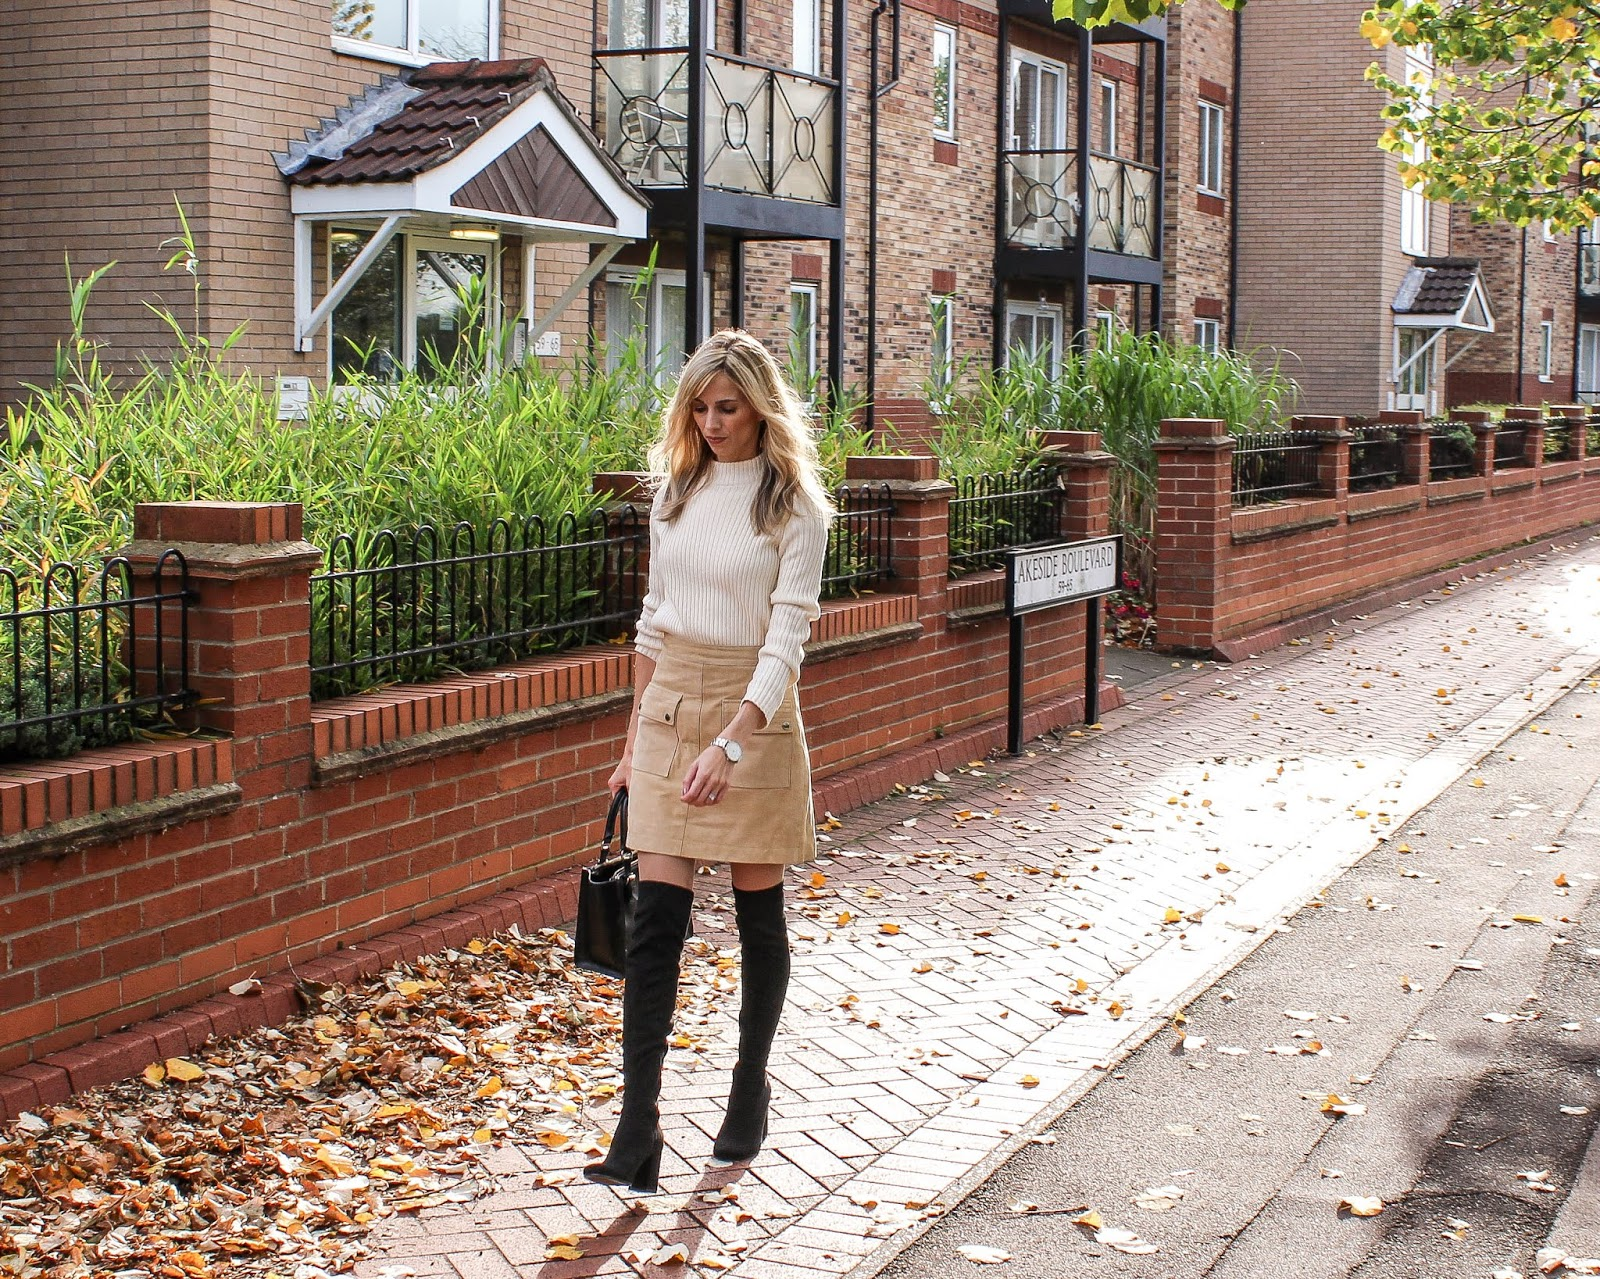 Autumn High Street Fashion